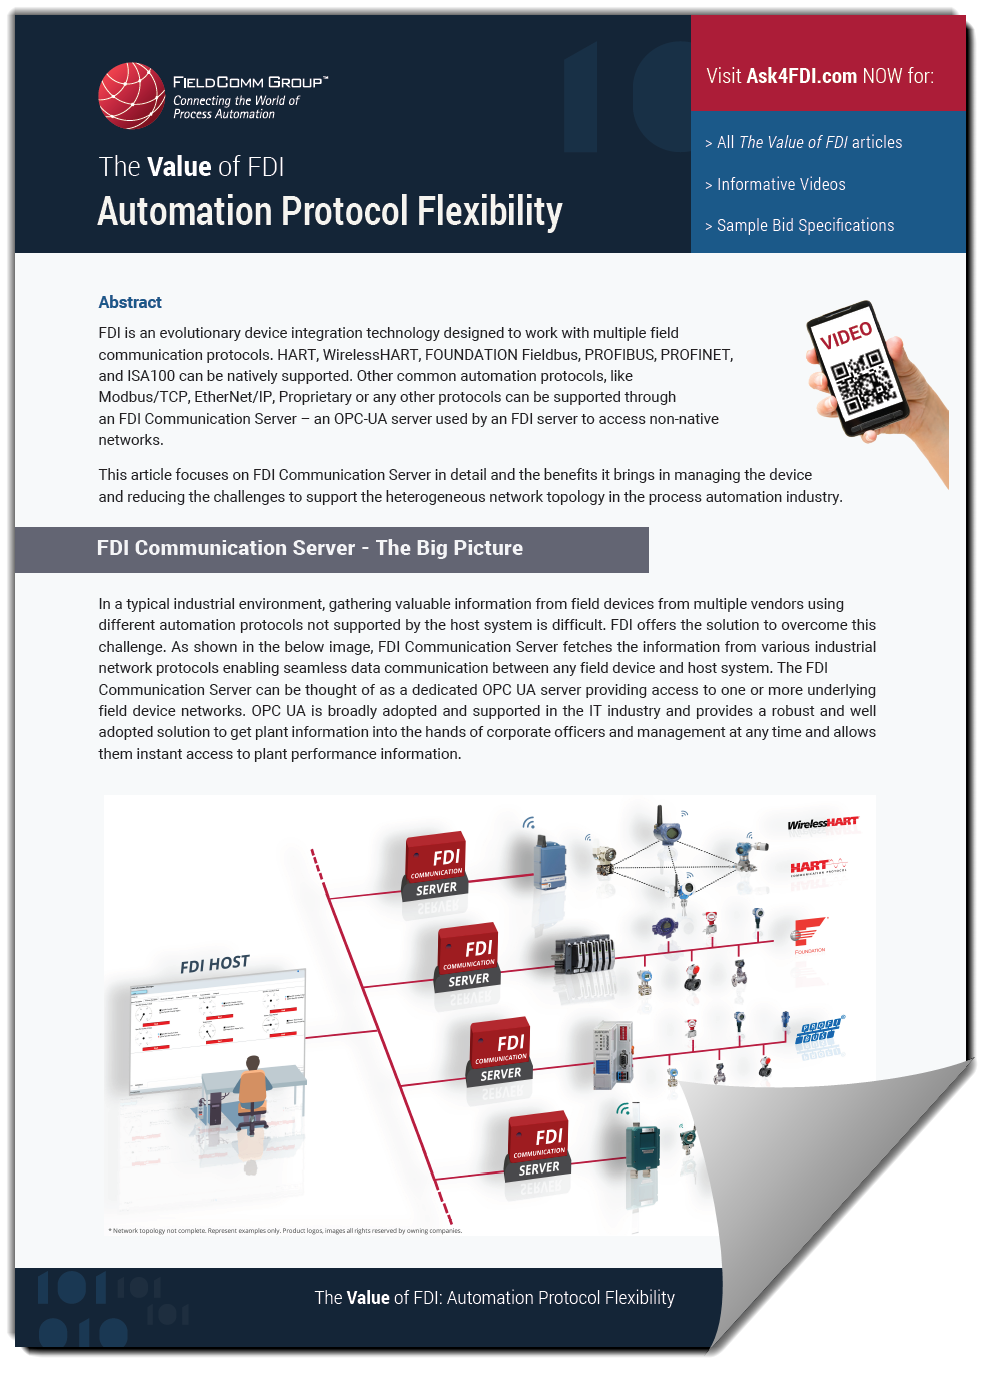 The Value of FDI: Automation Protocol Flexibility -